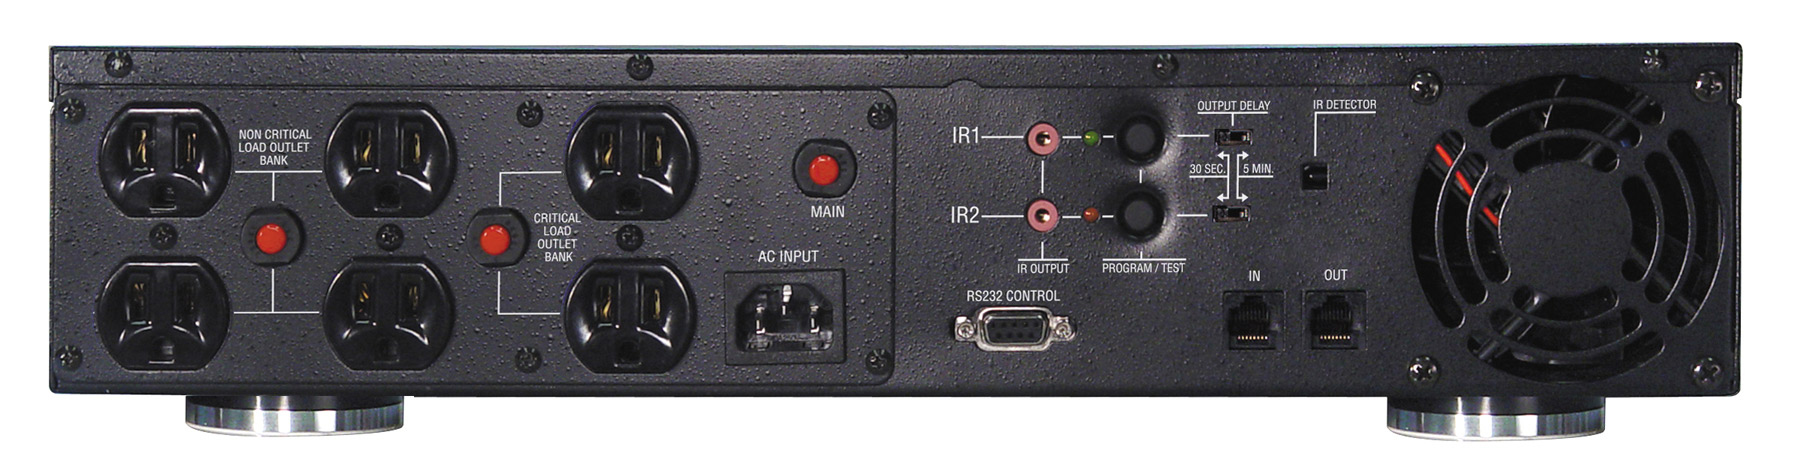 The Panamax MB1500 Home Theater Uninterruptible Power Supply Battery